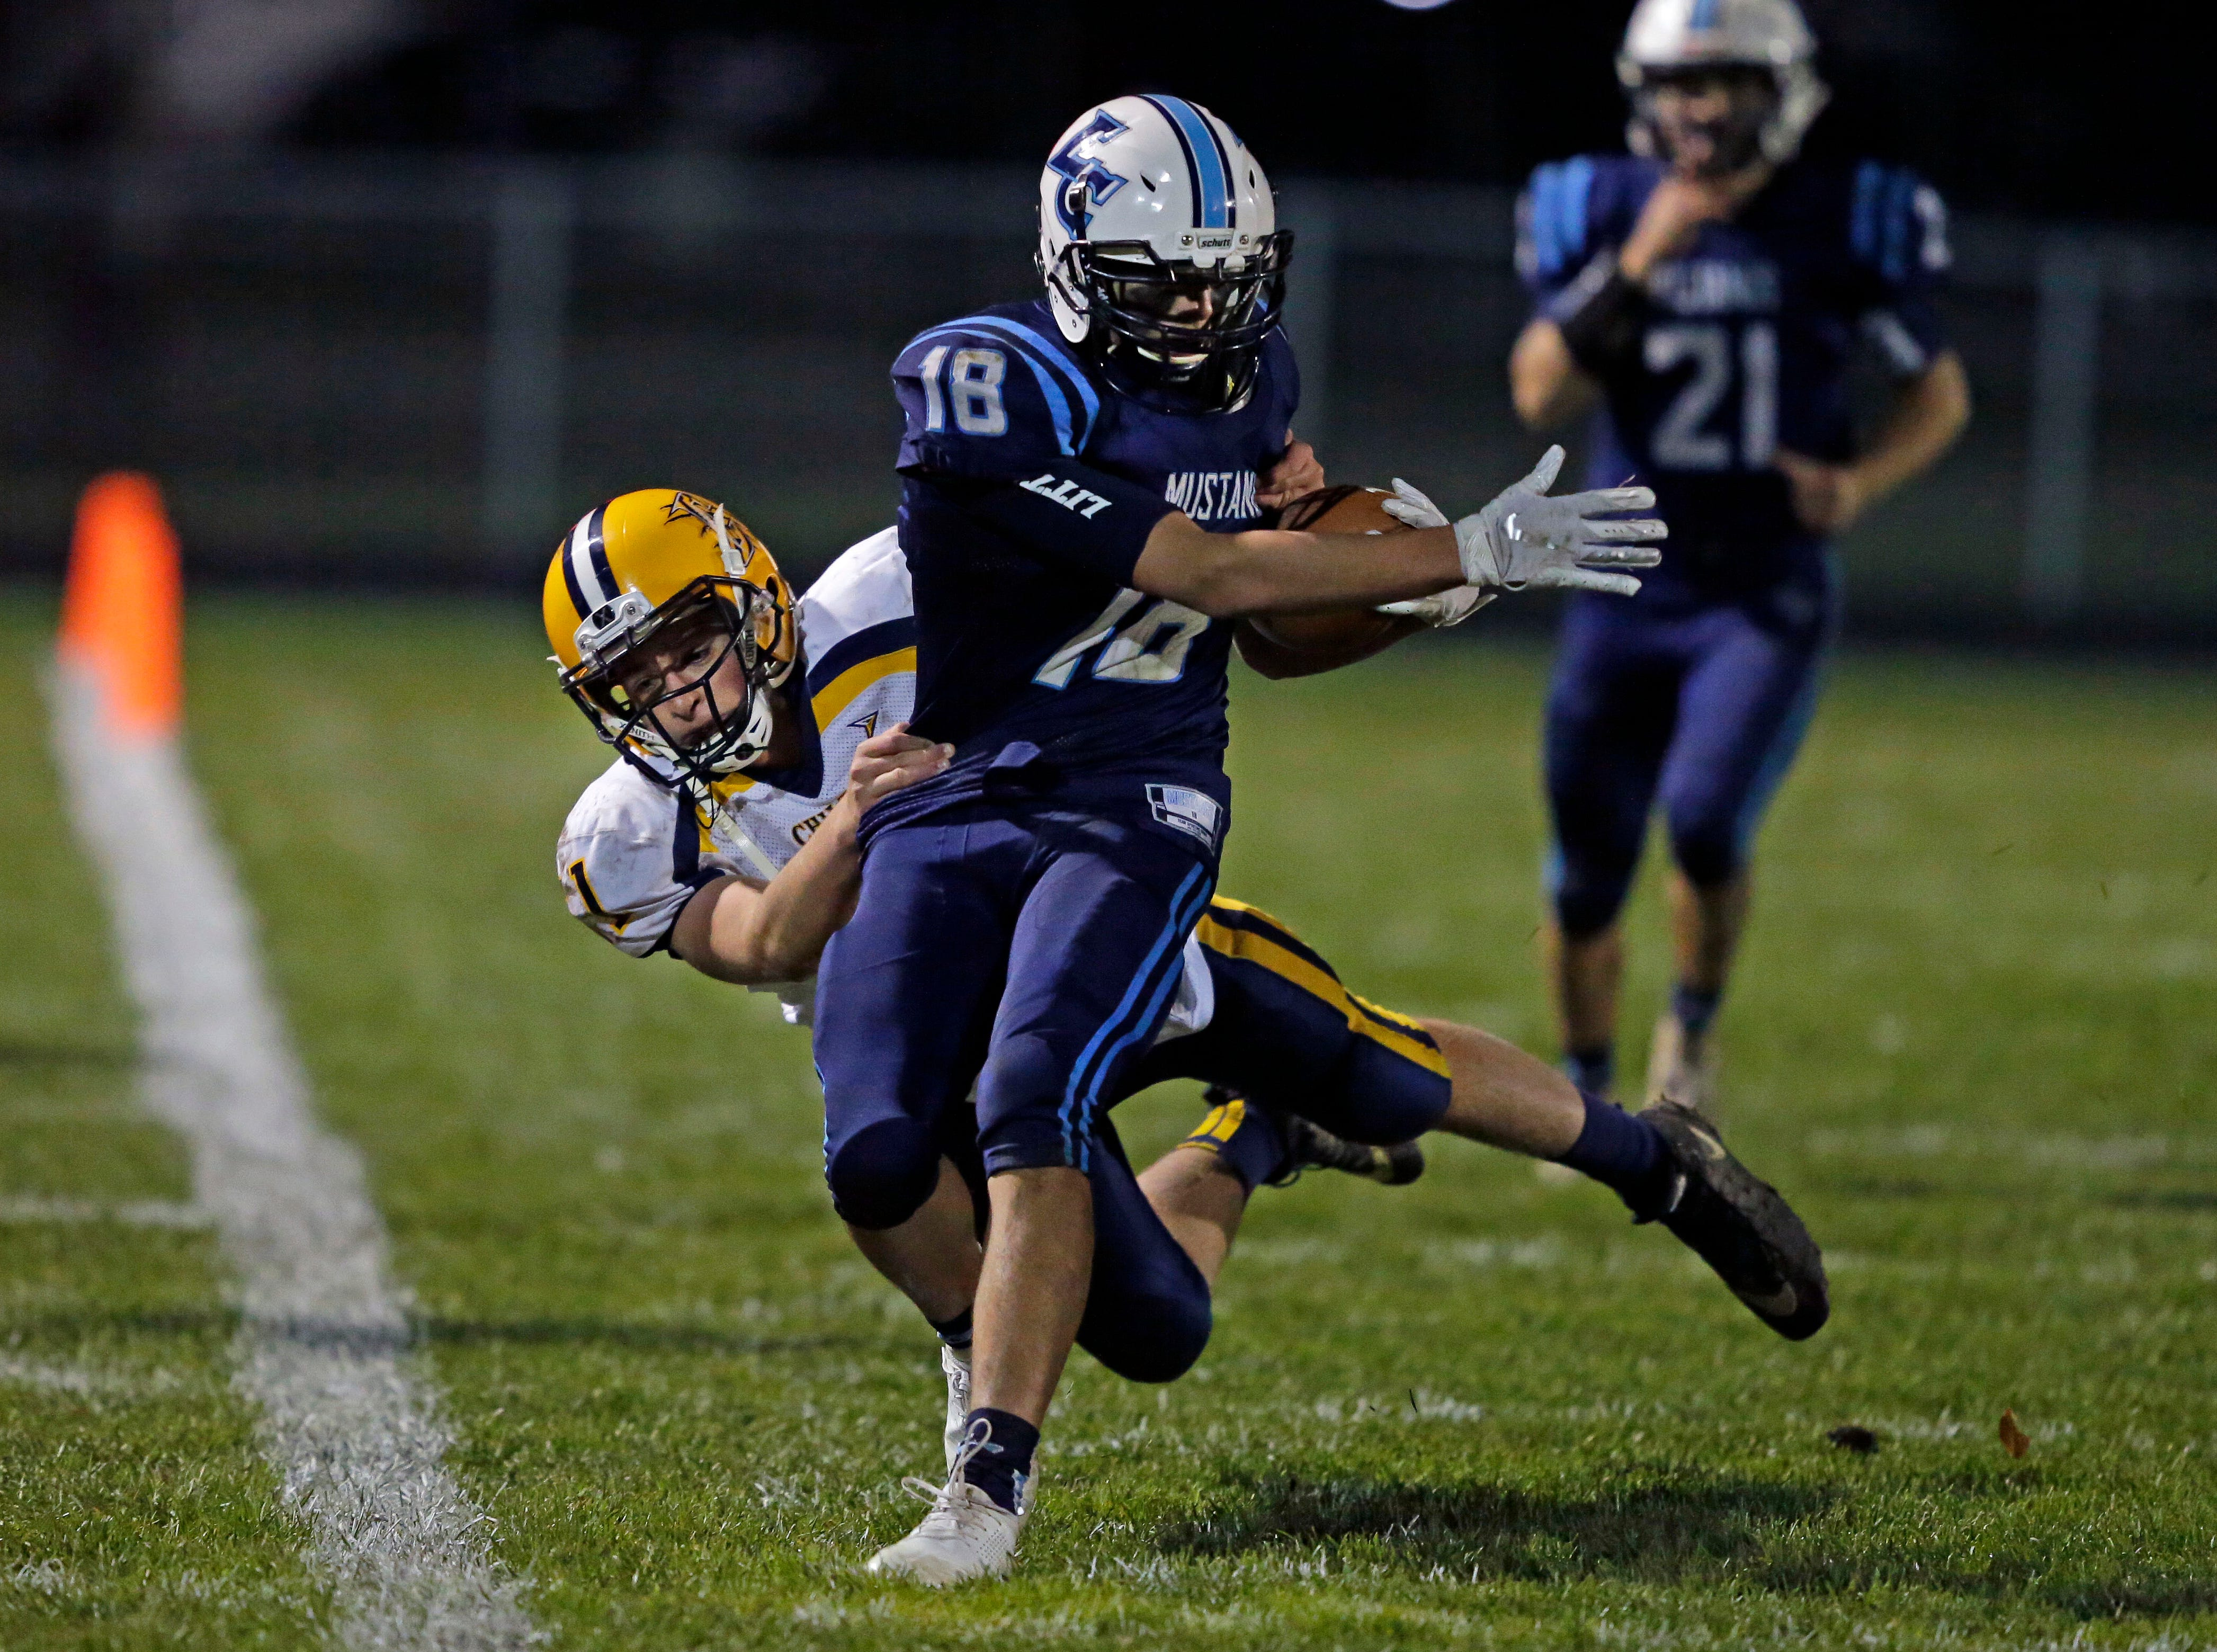 David Peeters of Little Chute intercepts a pass and is tackled by Fredric Lamers of Chilton in a WIAA Division 4 second round football playoff game Friday, October 26, 2018, at Little Chute High School in Little Chute, Wis.Ron Page/USA TODAY NETWORK-Wisconsin